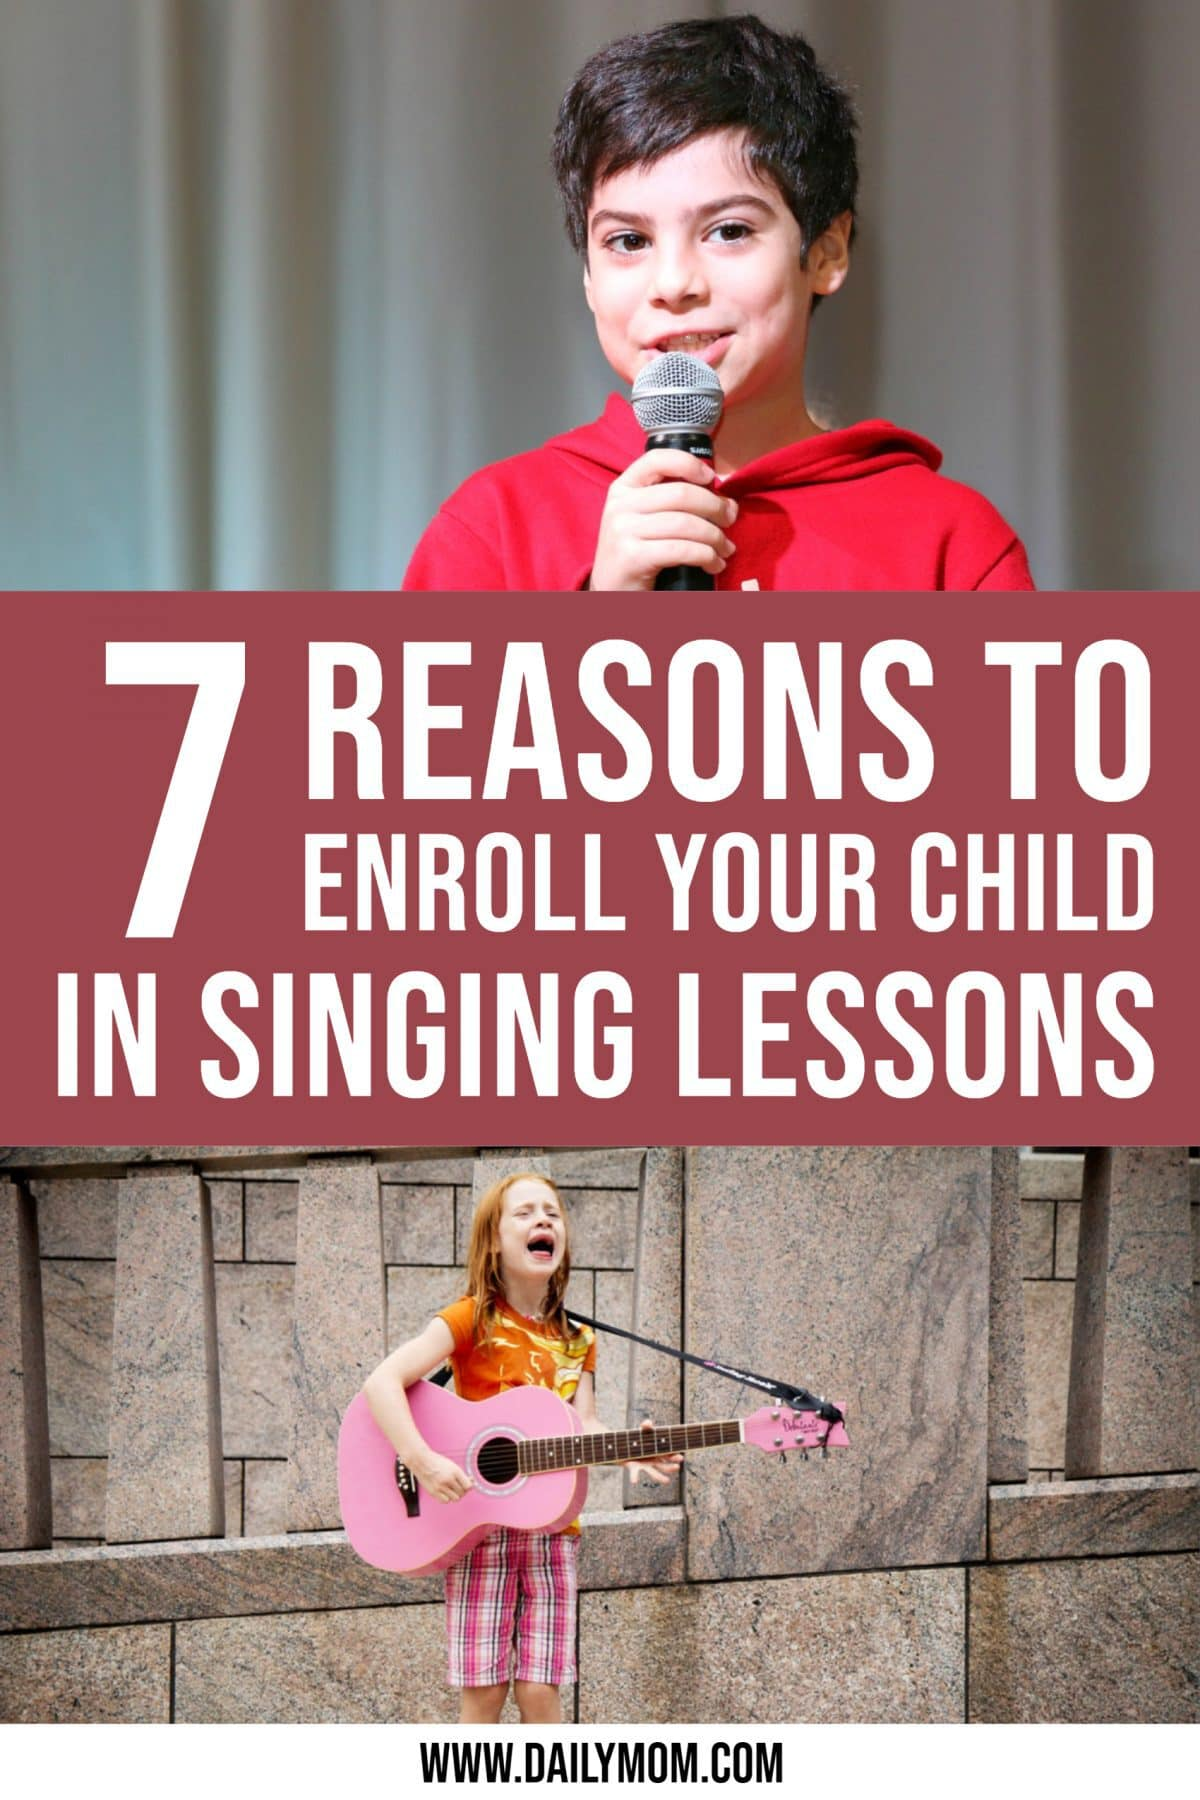 The Top 7 Benefits Of Enrolling Your Child In Singing Lessons- No Matter Their Vocal Talent